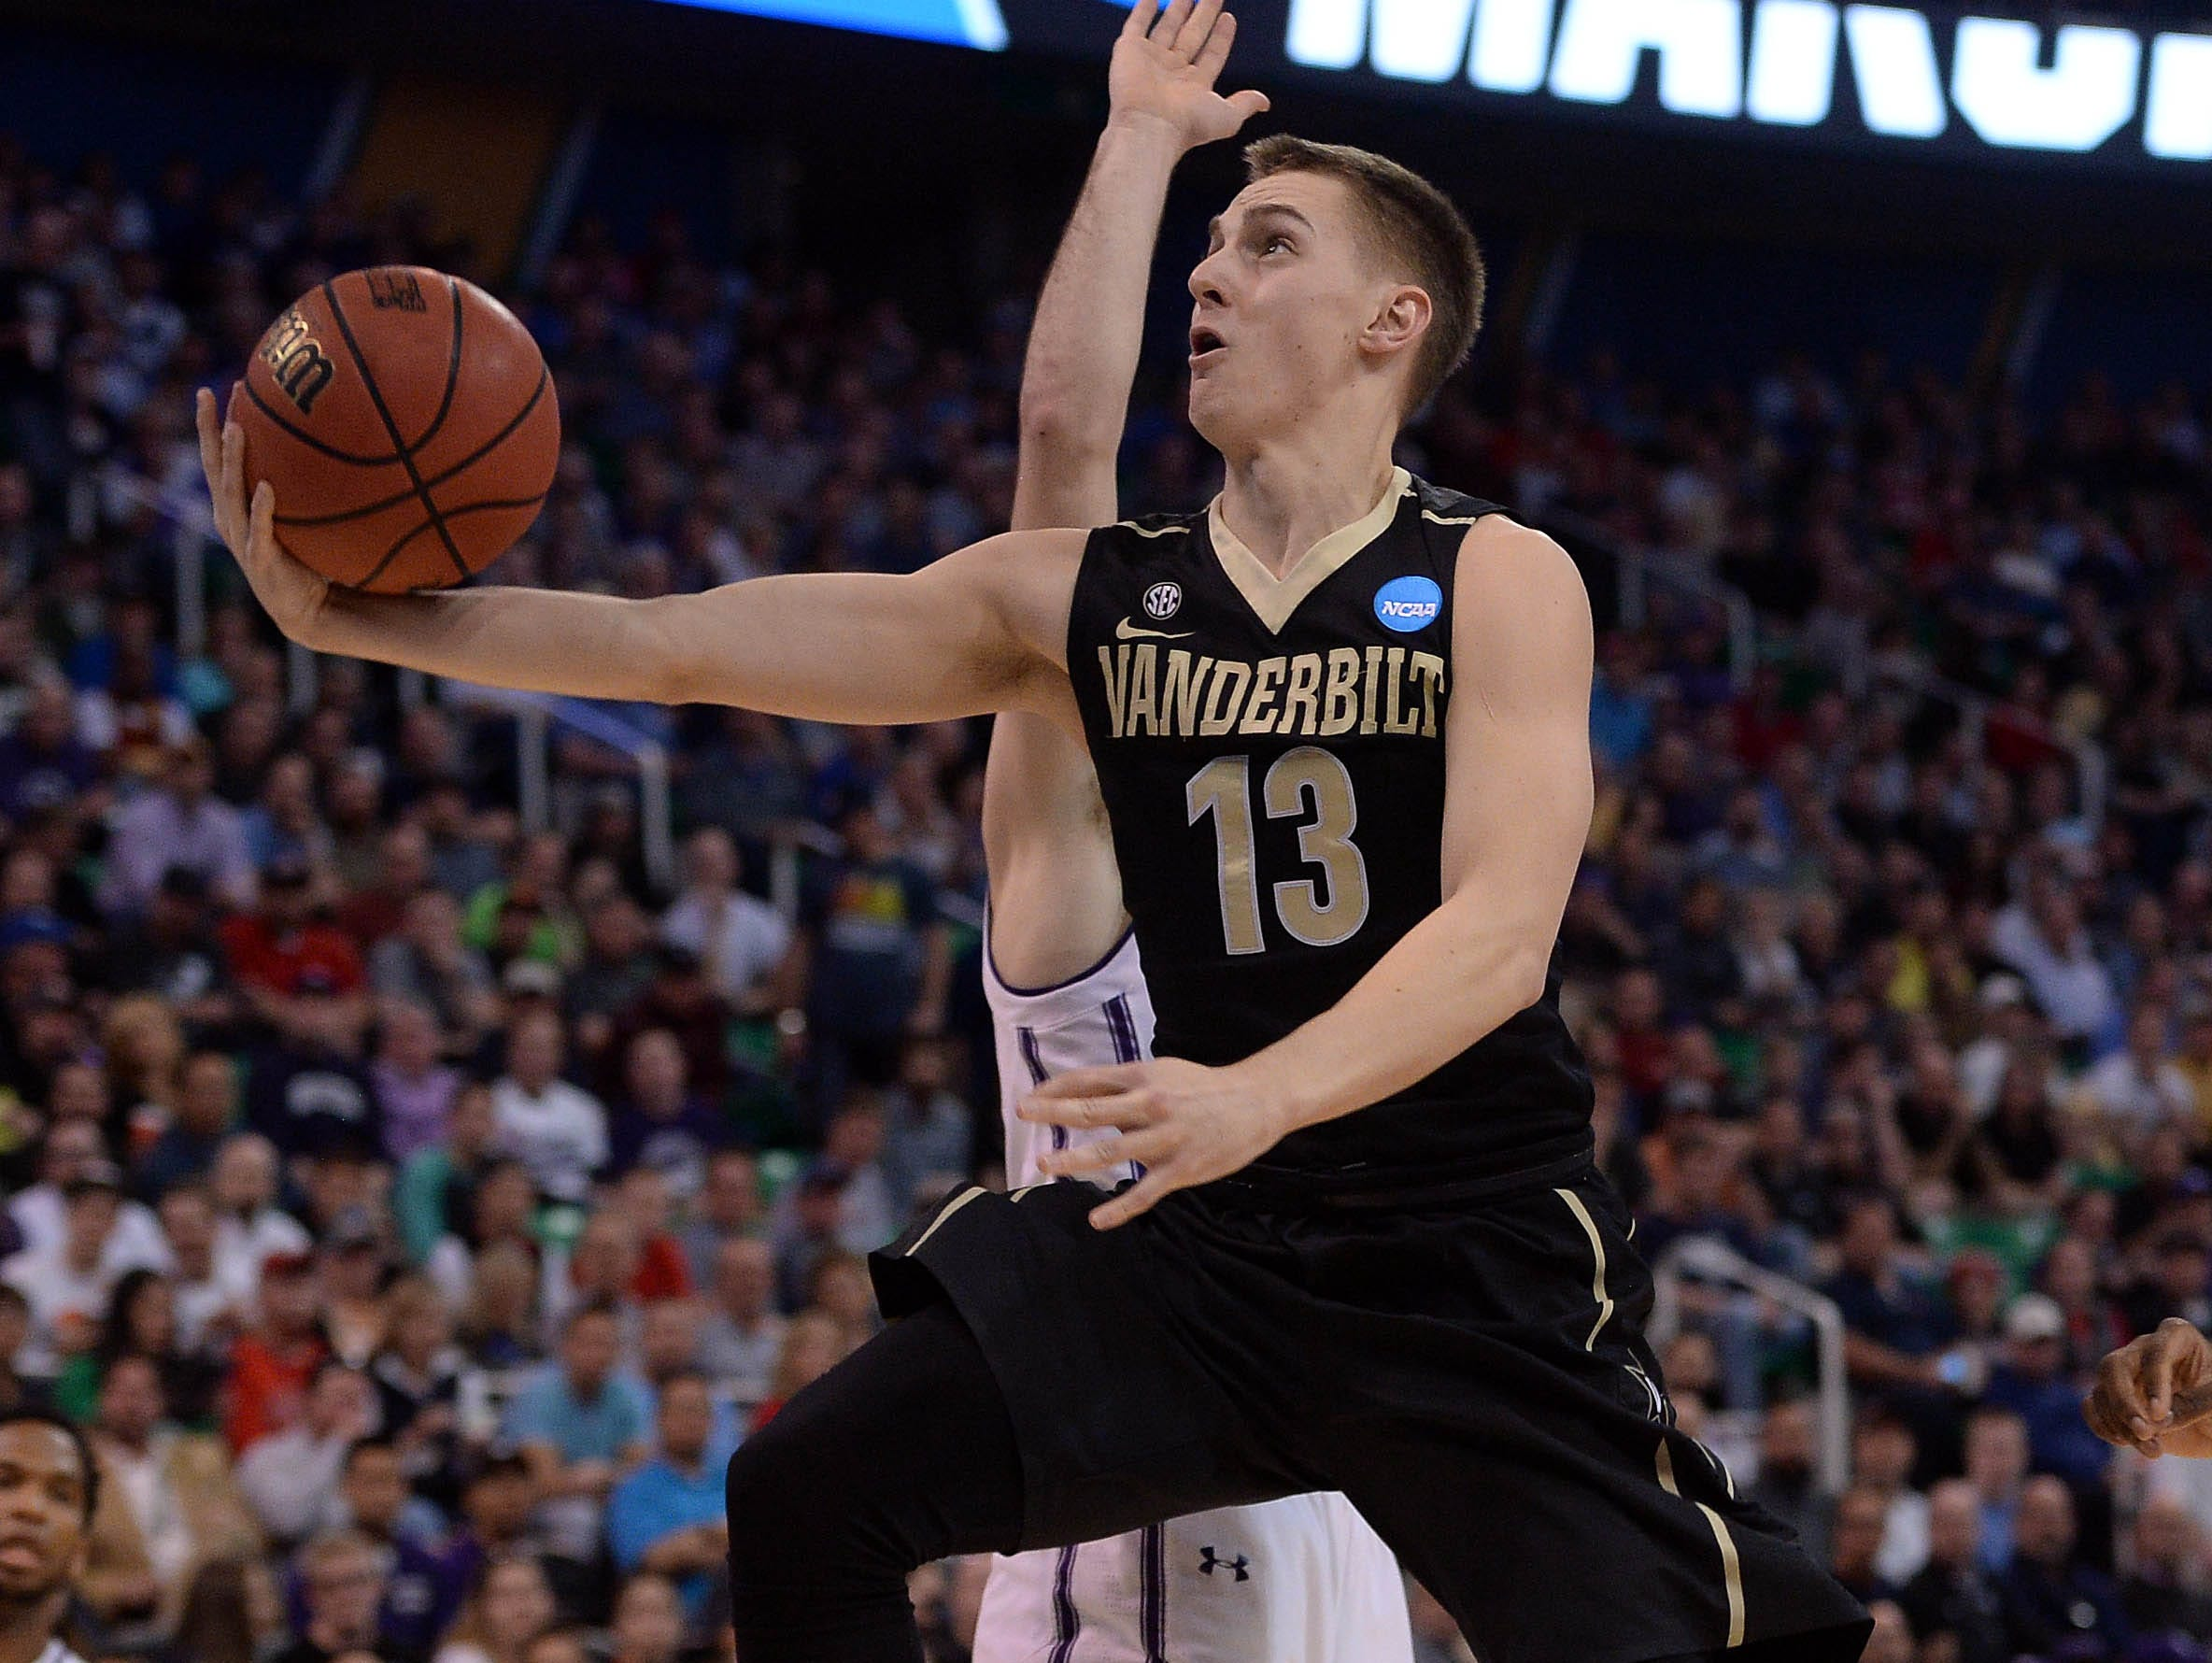 Vanderbilt guard Riley LaChance (13) moves to the basket against Northwestern during the first half of the NCAA Tournament first-round game in Salt Lake City on March 16, 2017.